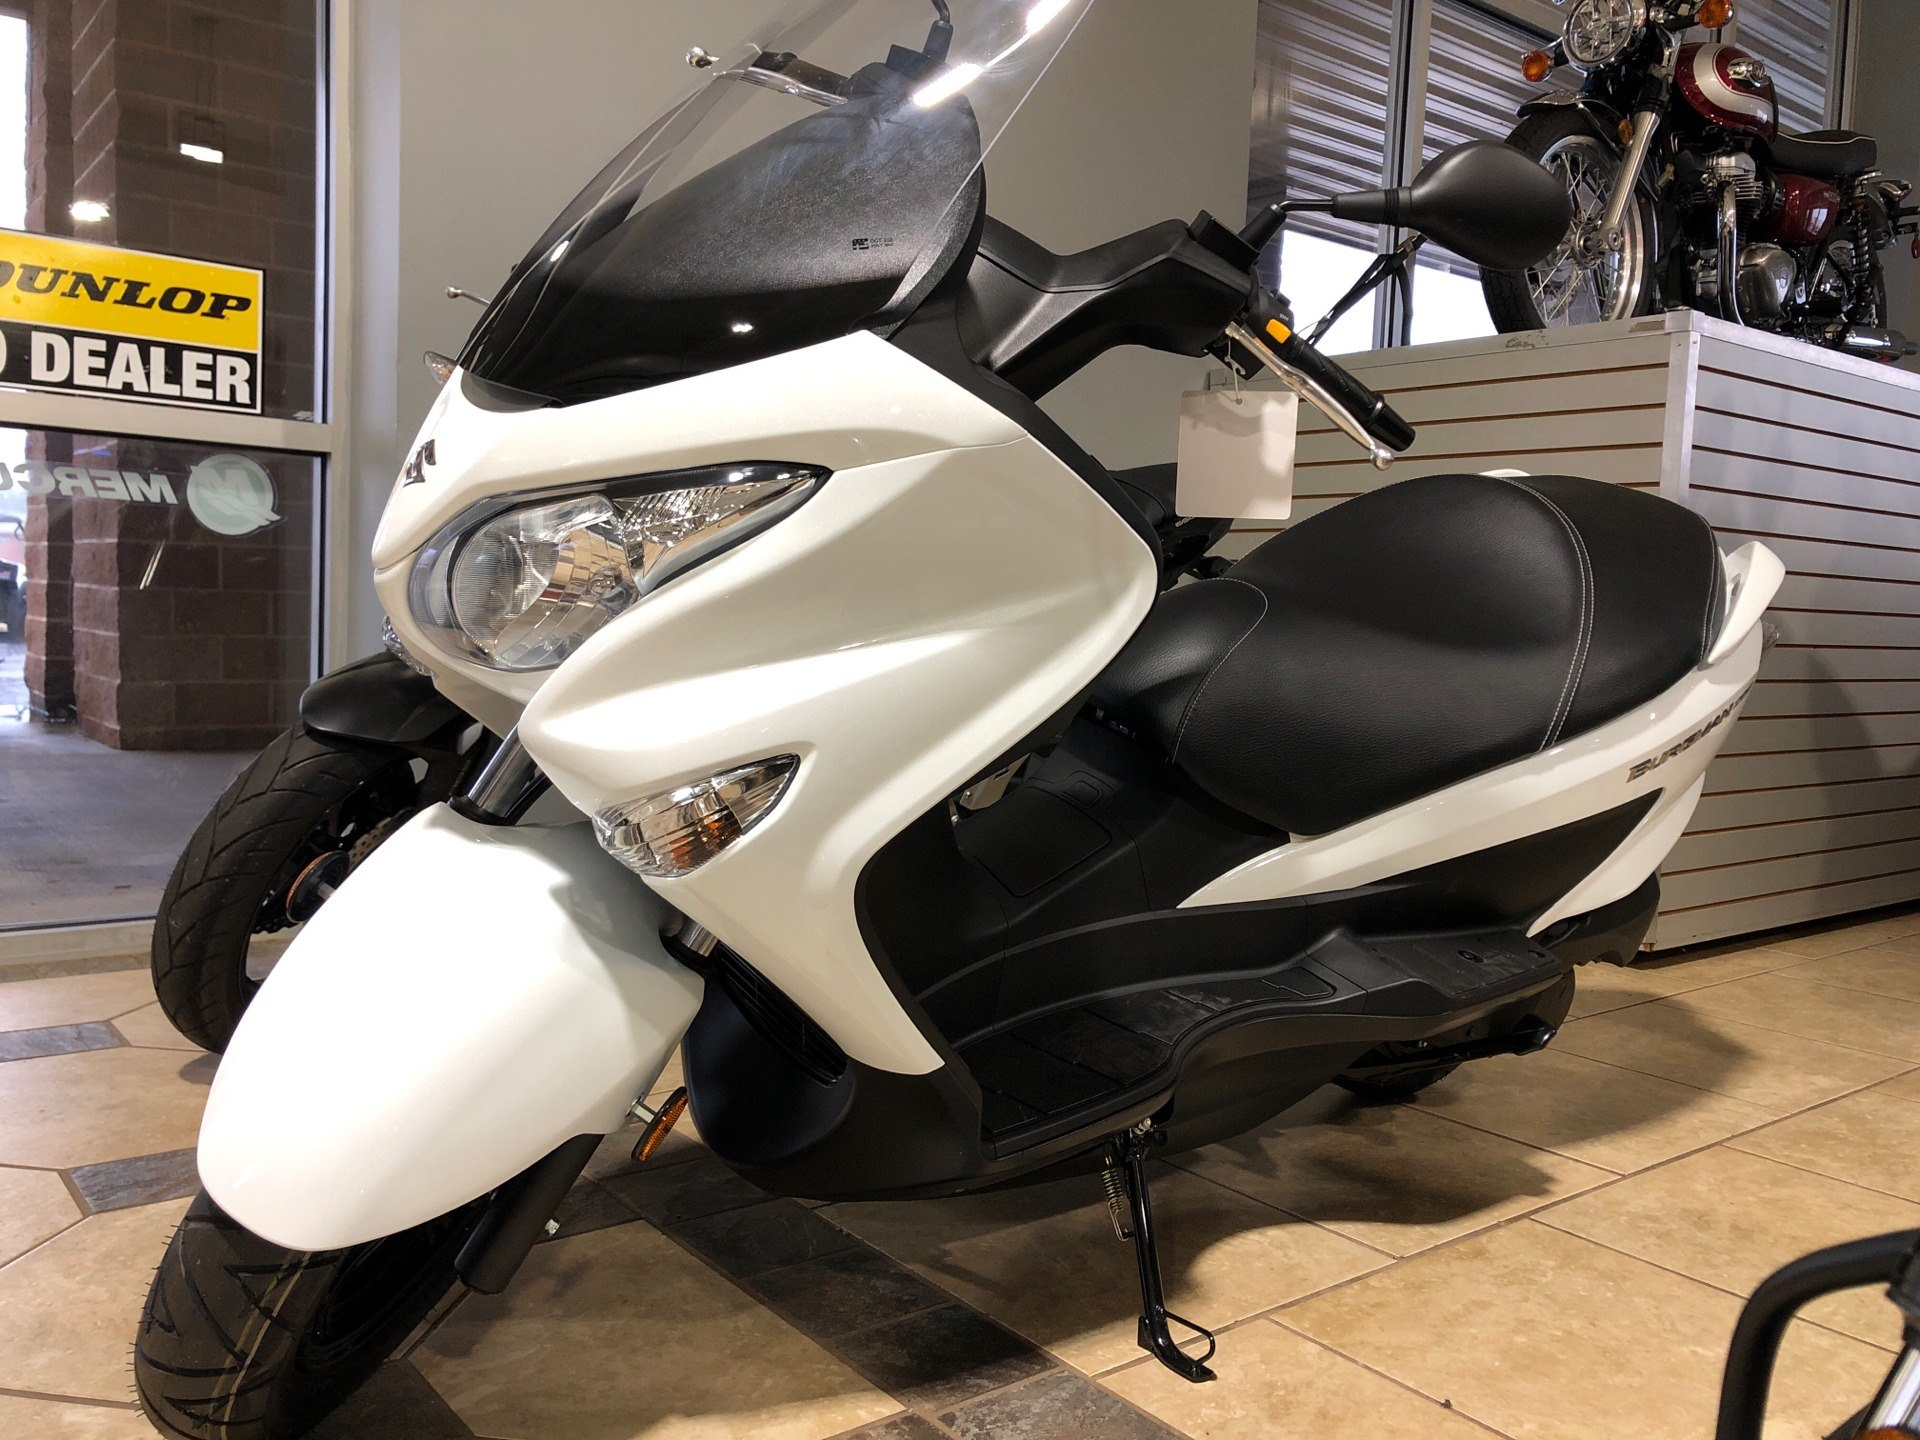 2020 Suzuki Burgman 200 in Rogers, Arkansas - Photo 3